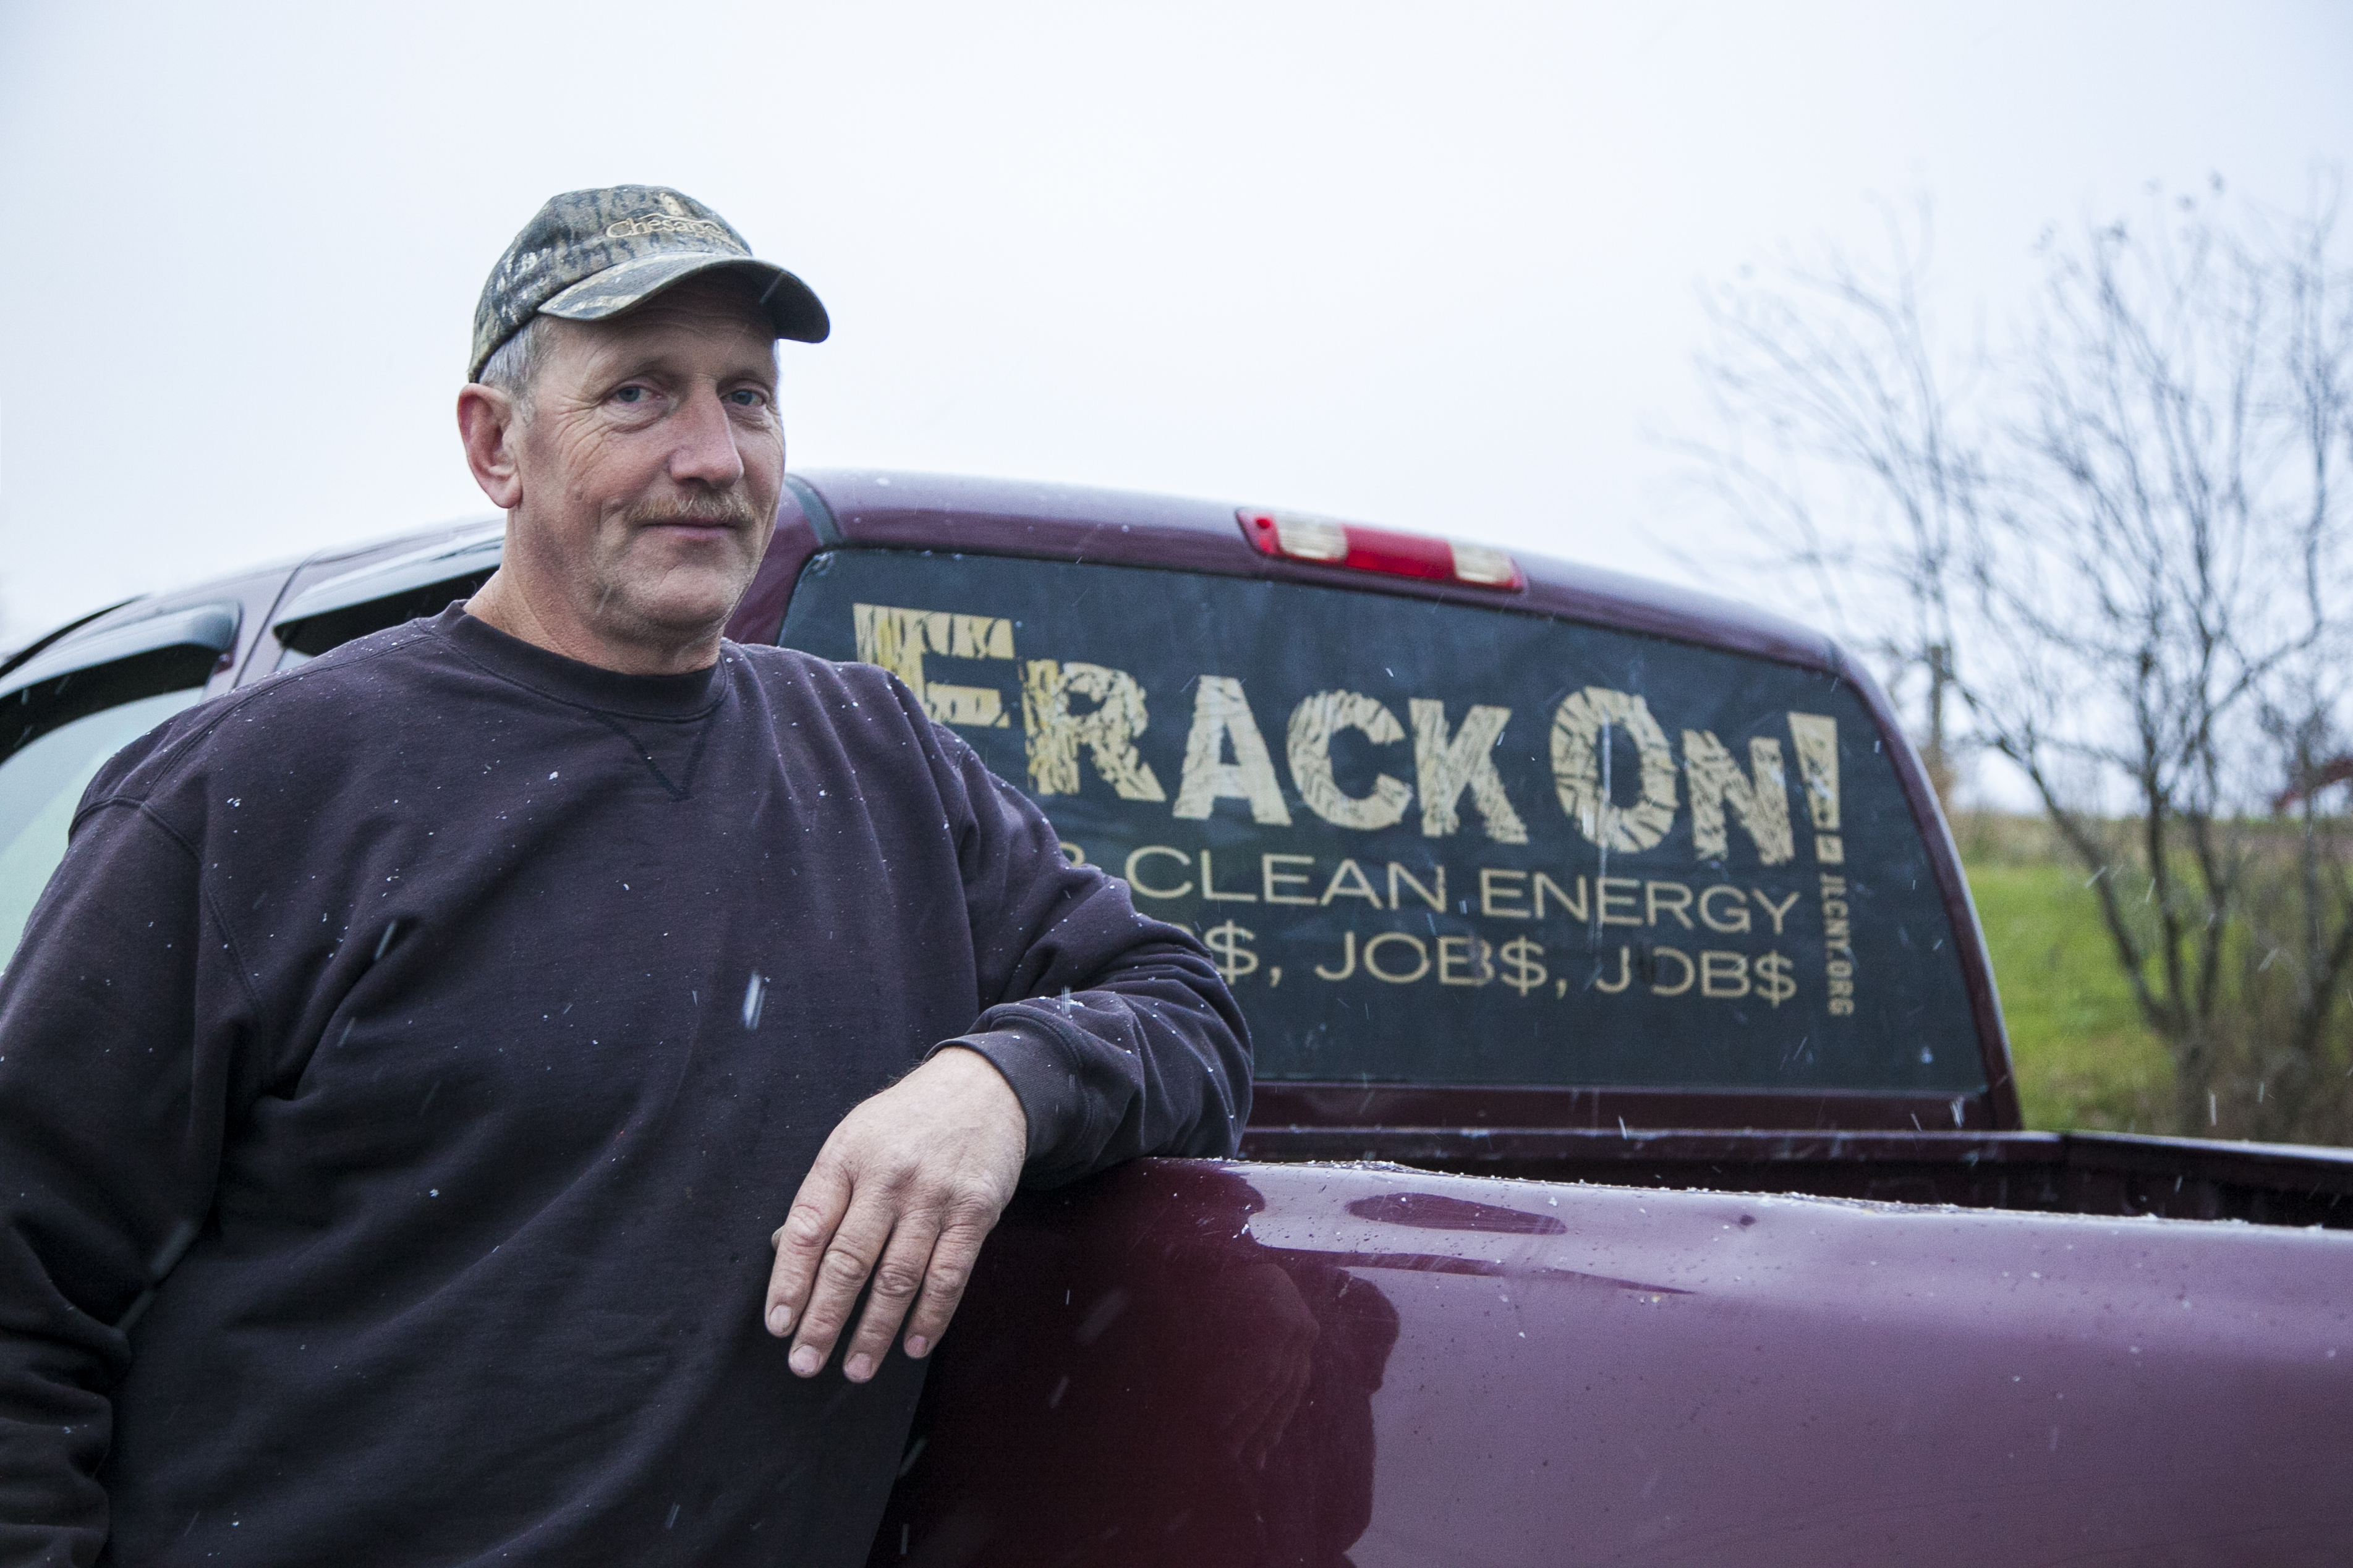 NYC Stands Against Fracking Waste Used to Melt Ice on Roads